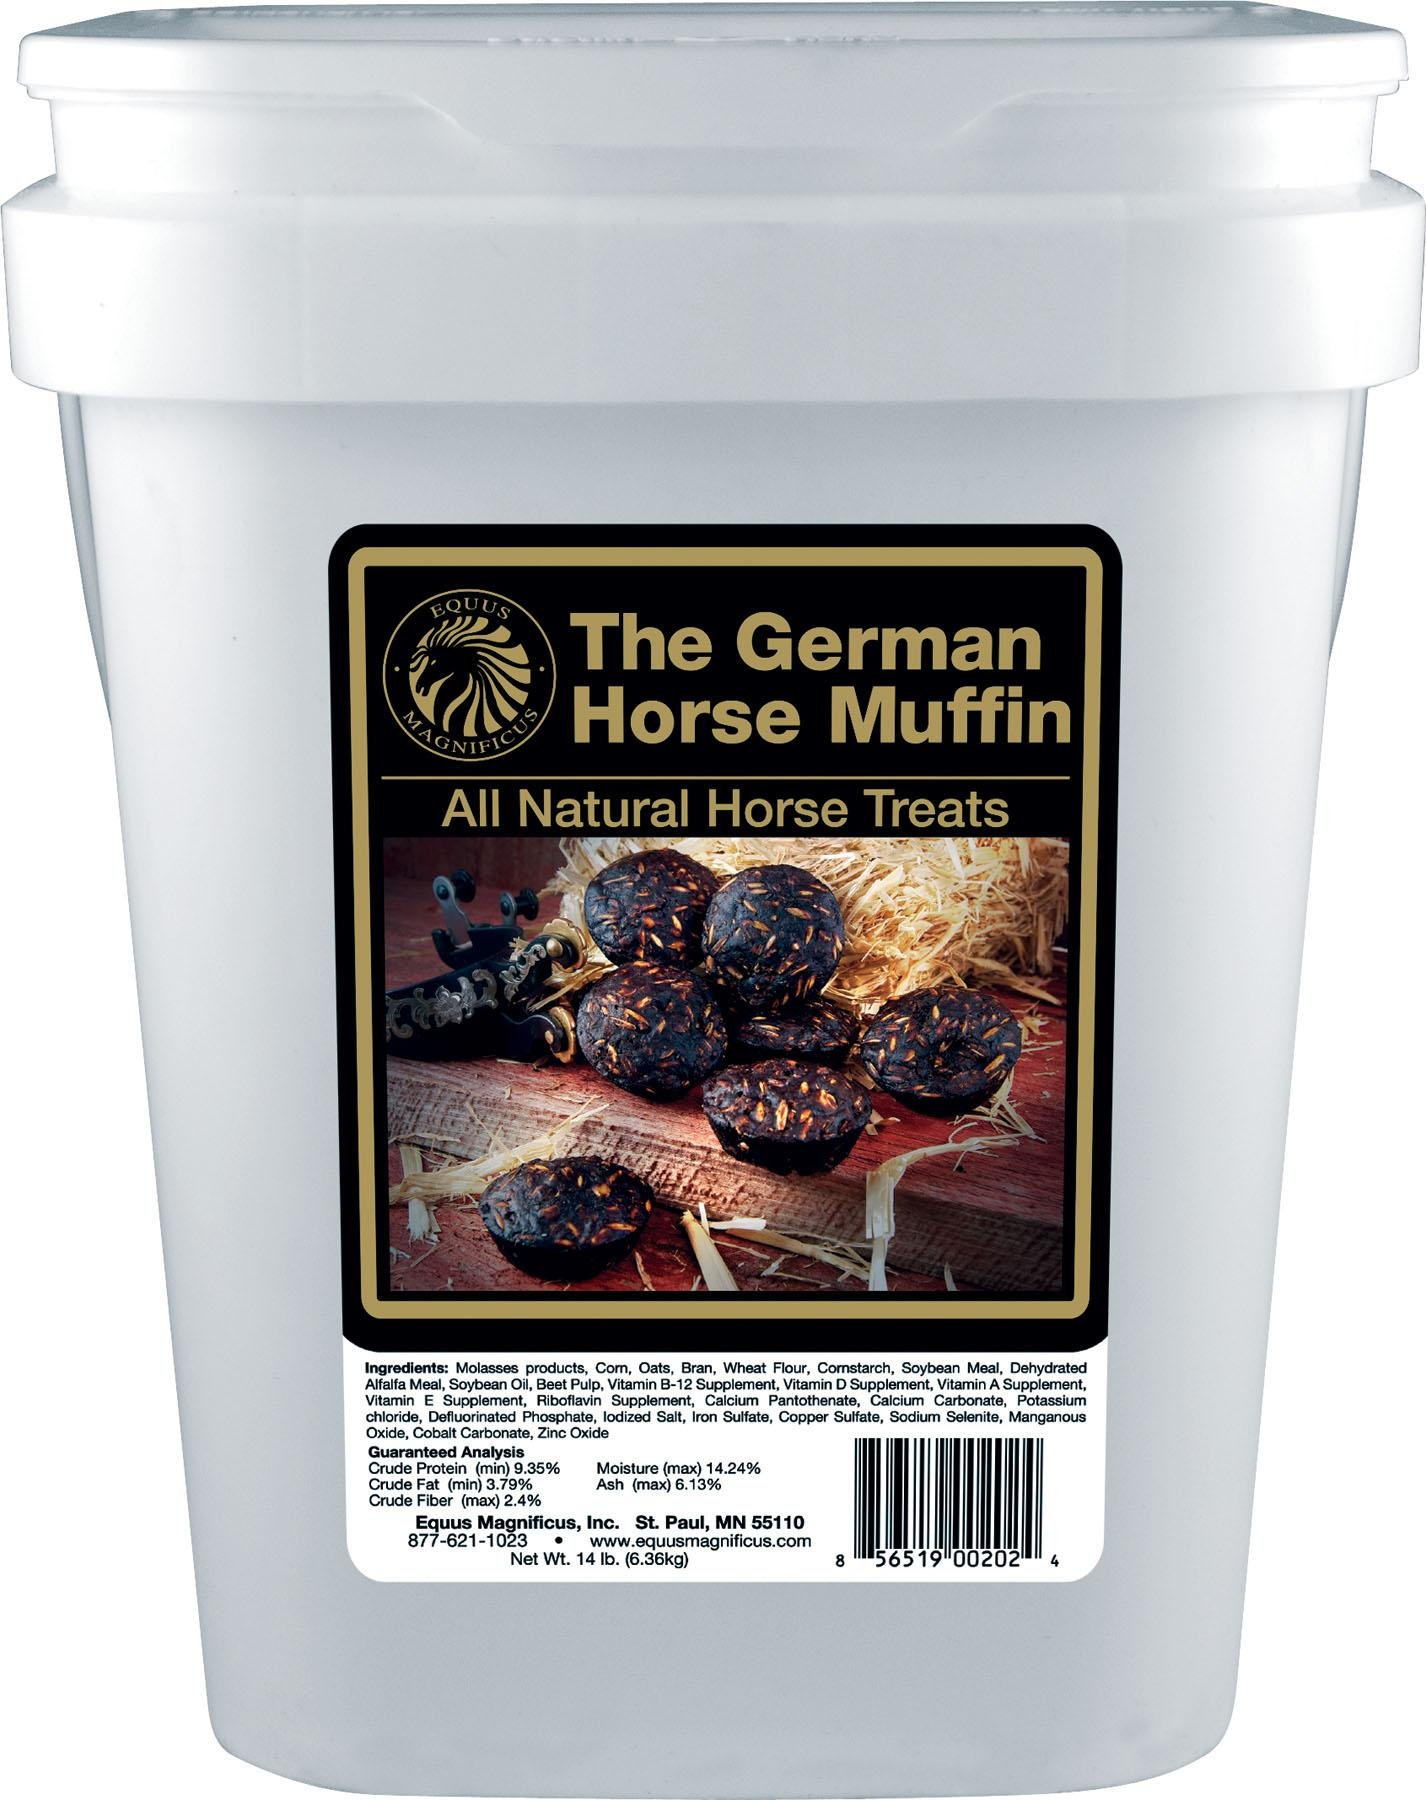 EQUUS MAGNIFICUSINC. D The German Horse Muffin All Natural Horse Treats 14 Pound Bucket